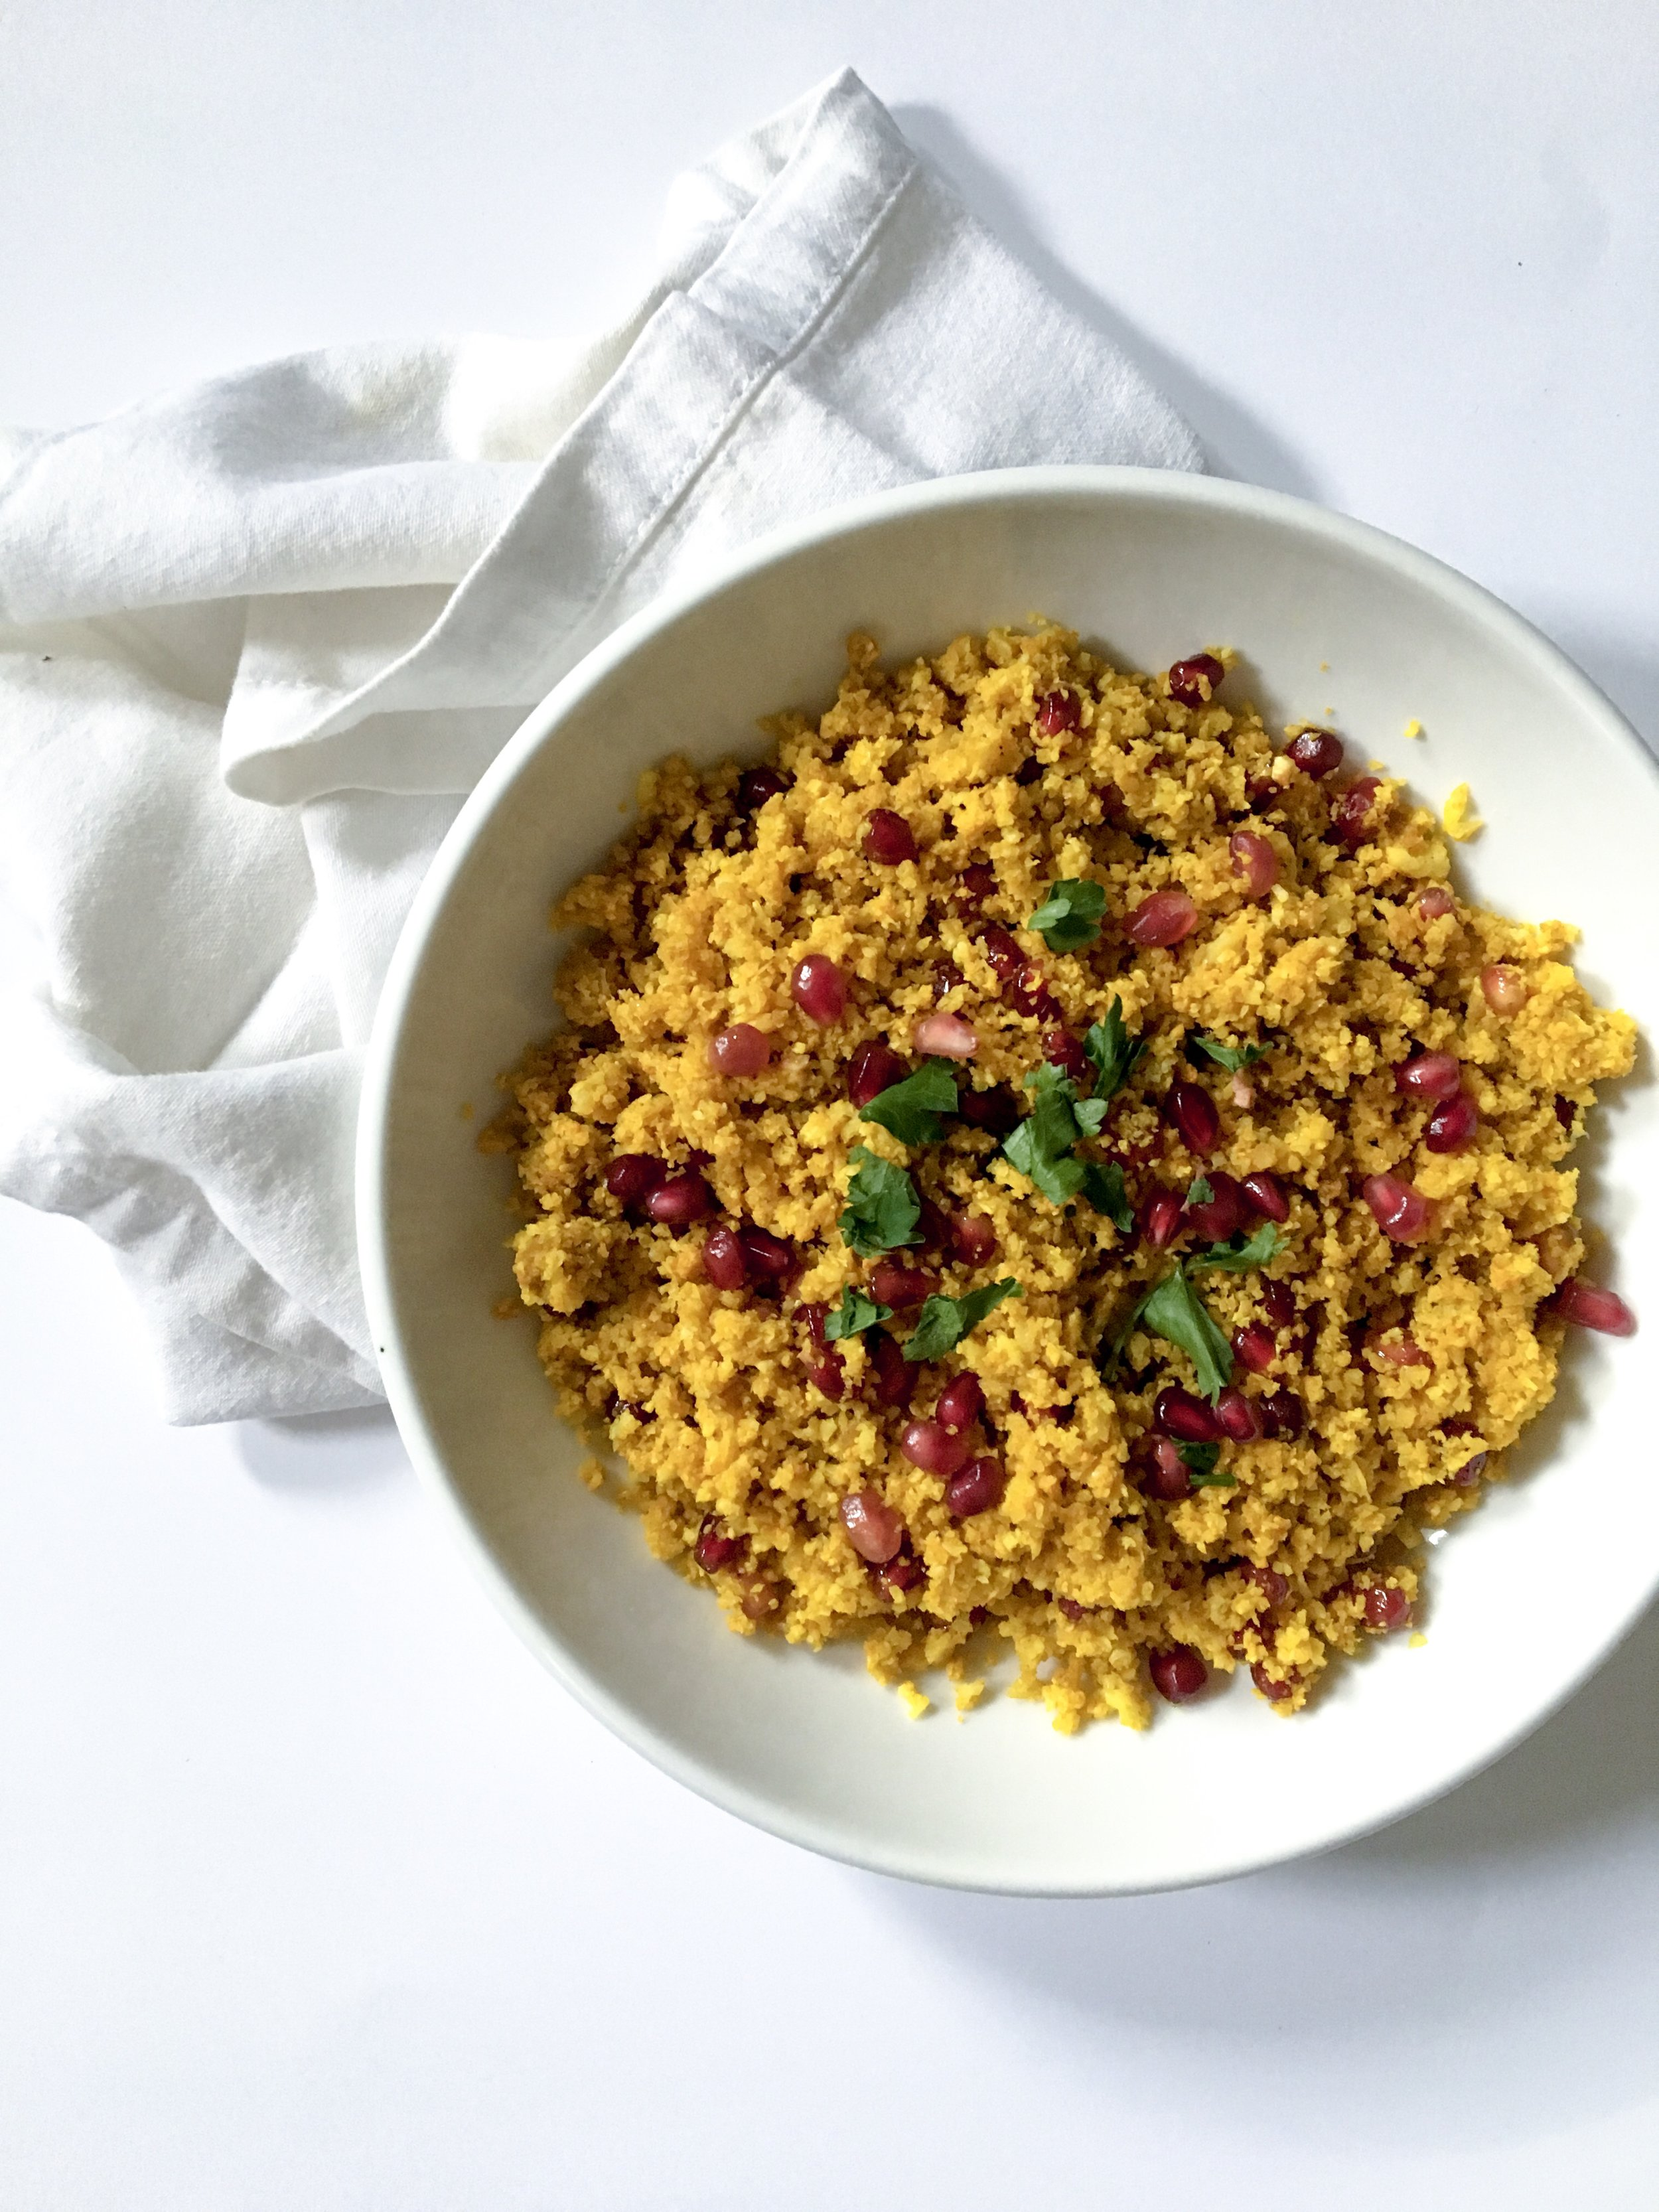 AIP Approved: Turmeric infused cauliflower rice mixed with pomegranate seeds and a hint of cinnamon and cloves.